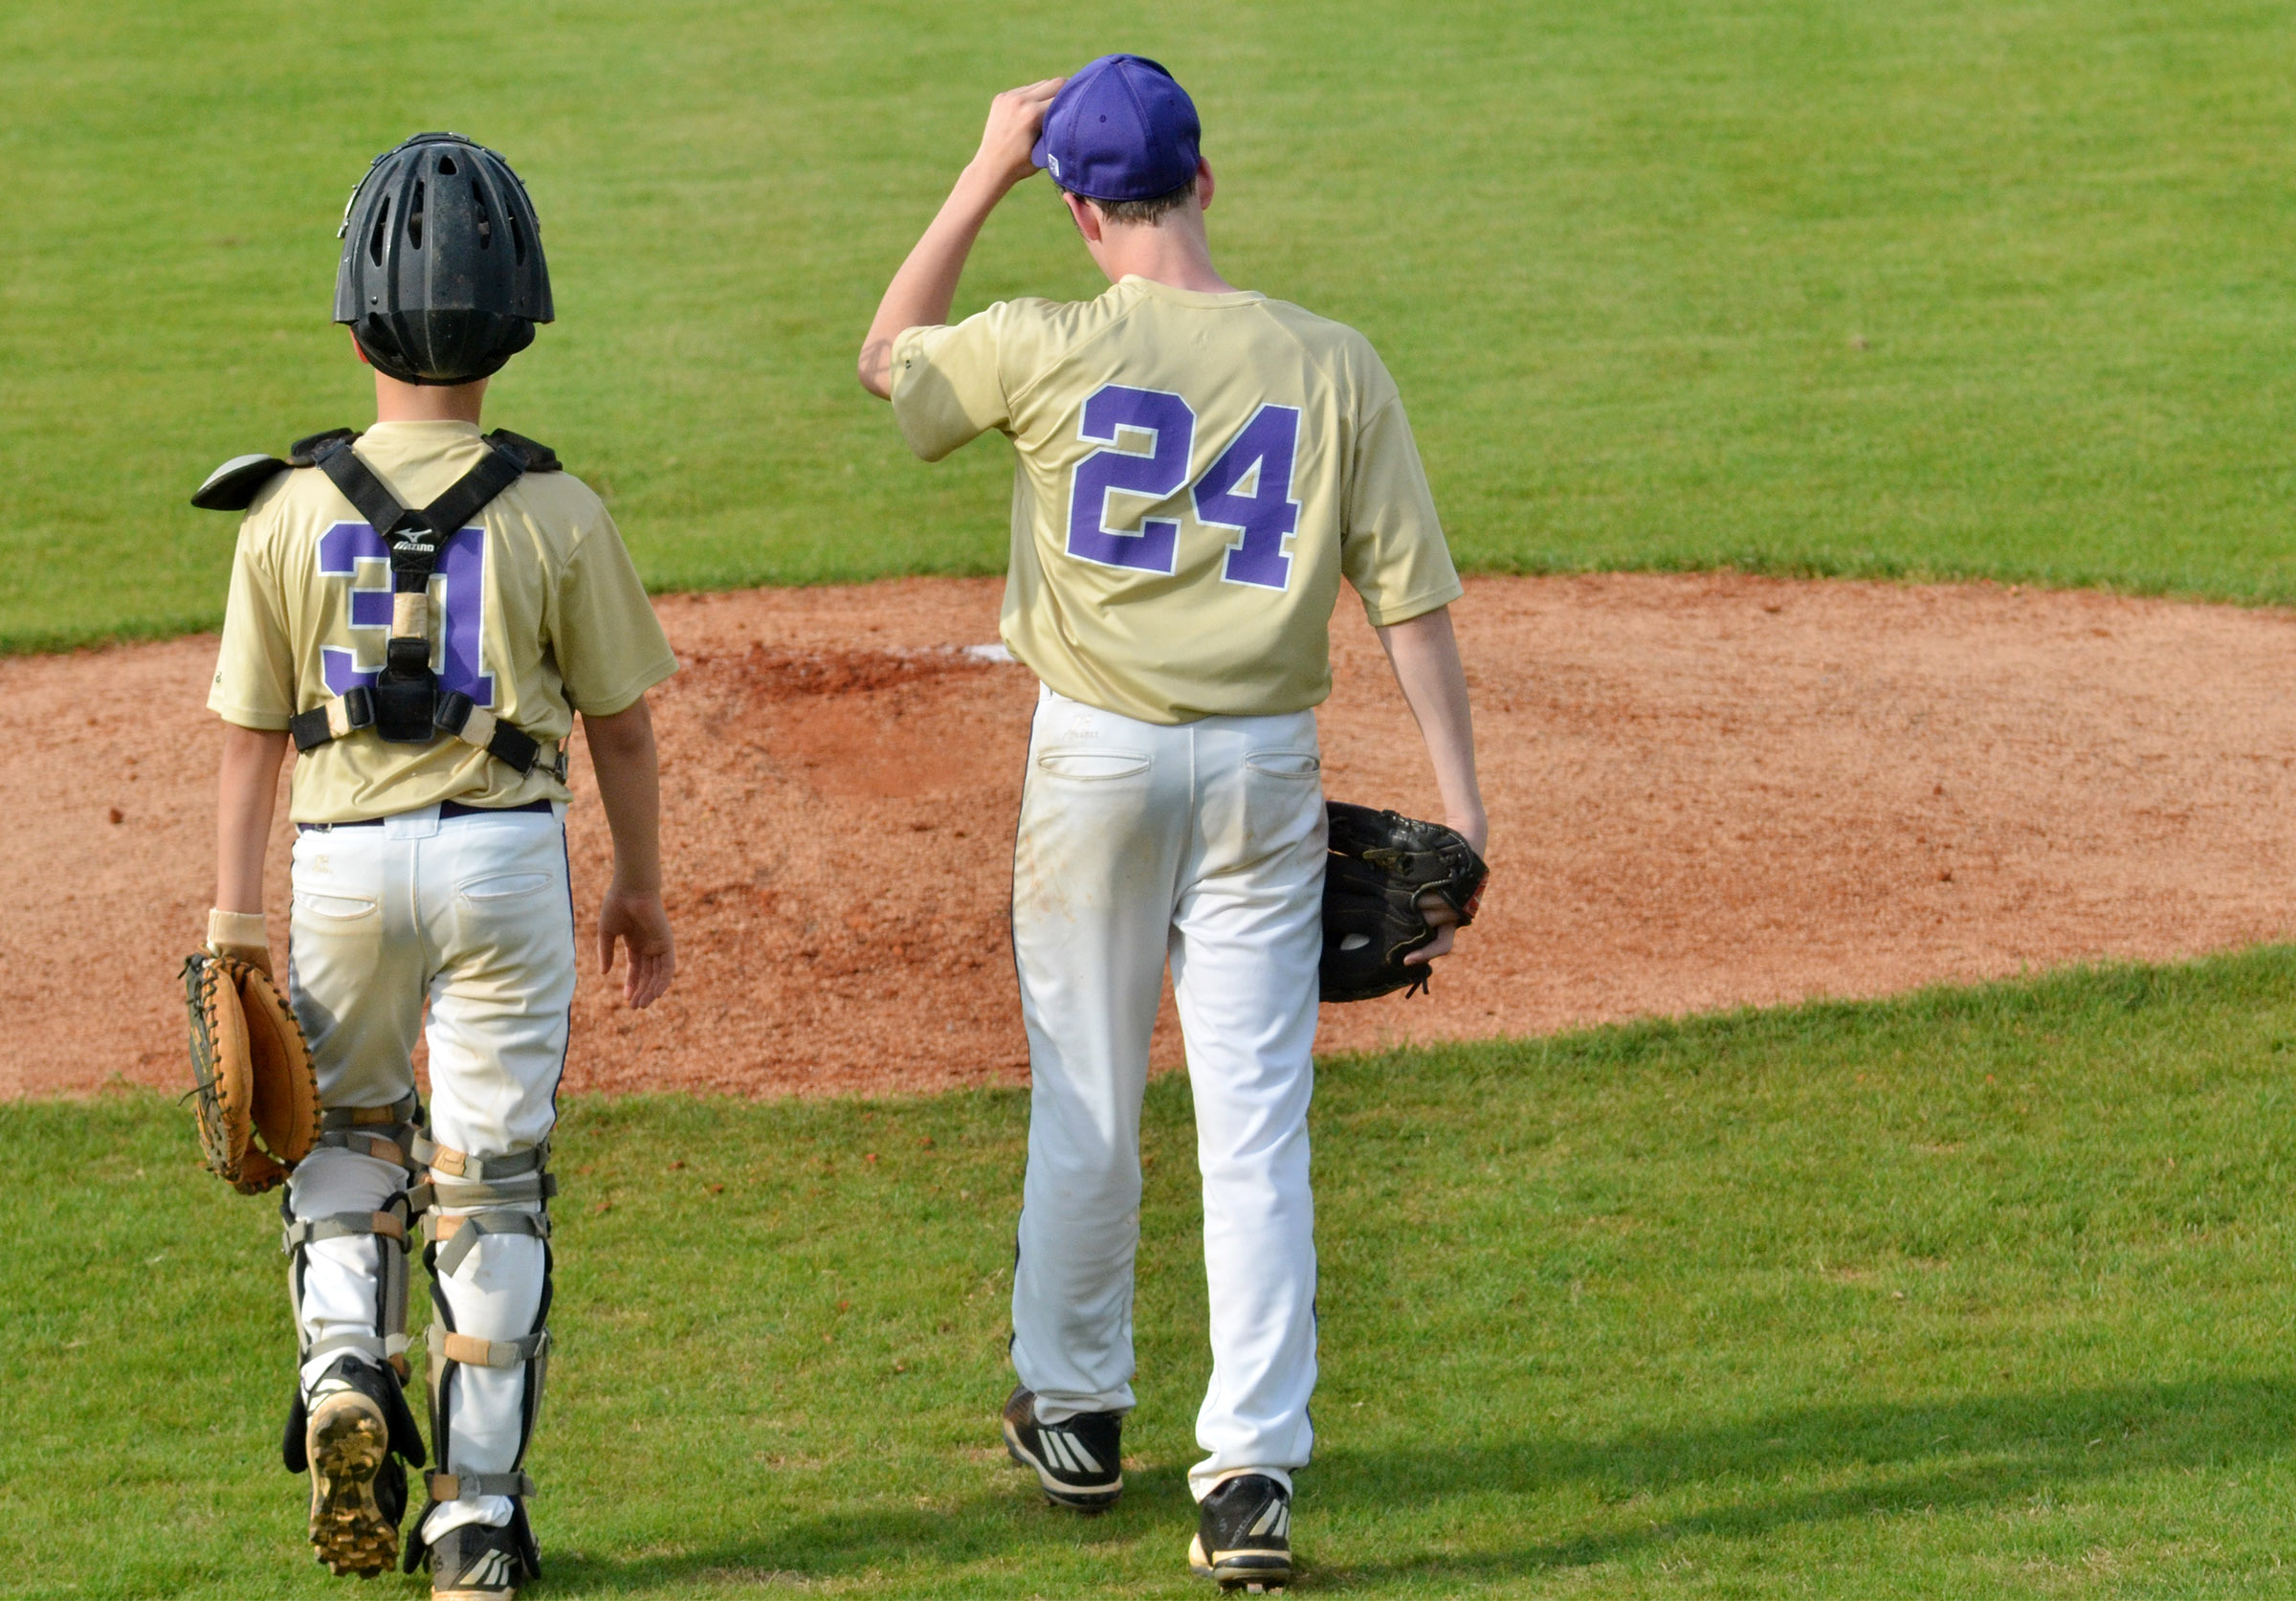 CMS sixth-grader Konner Forbis, at left, and seventh-grader Seth Hash walk to the pitcher's mound.